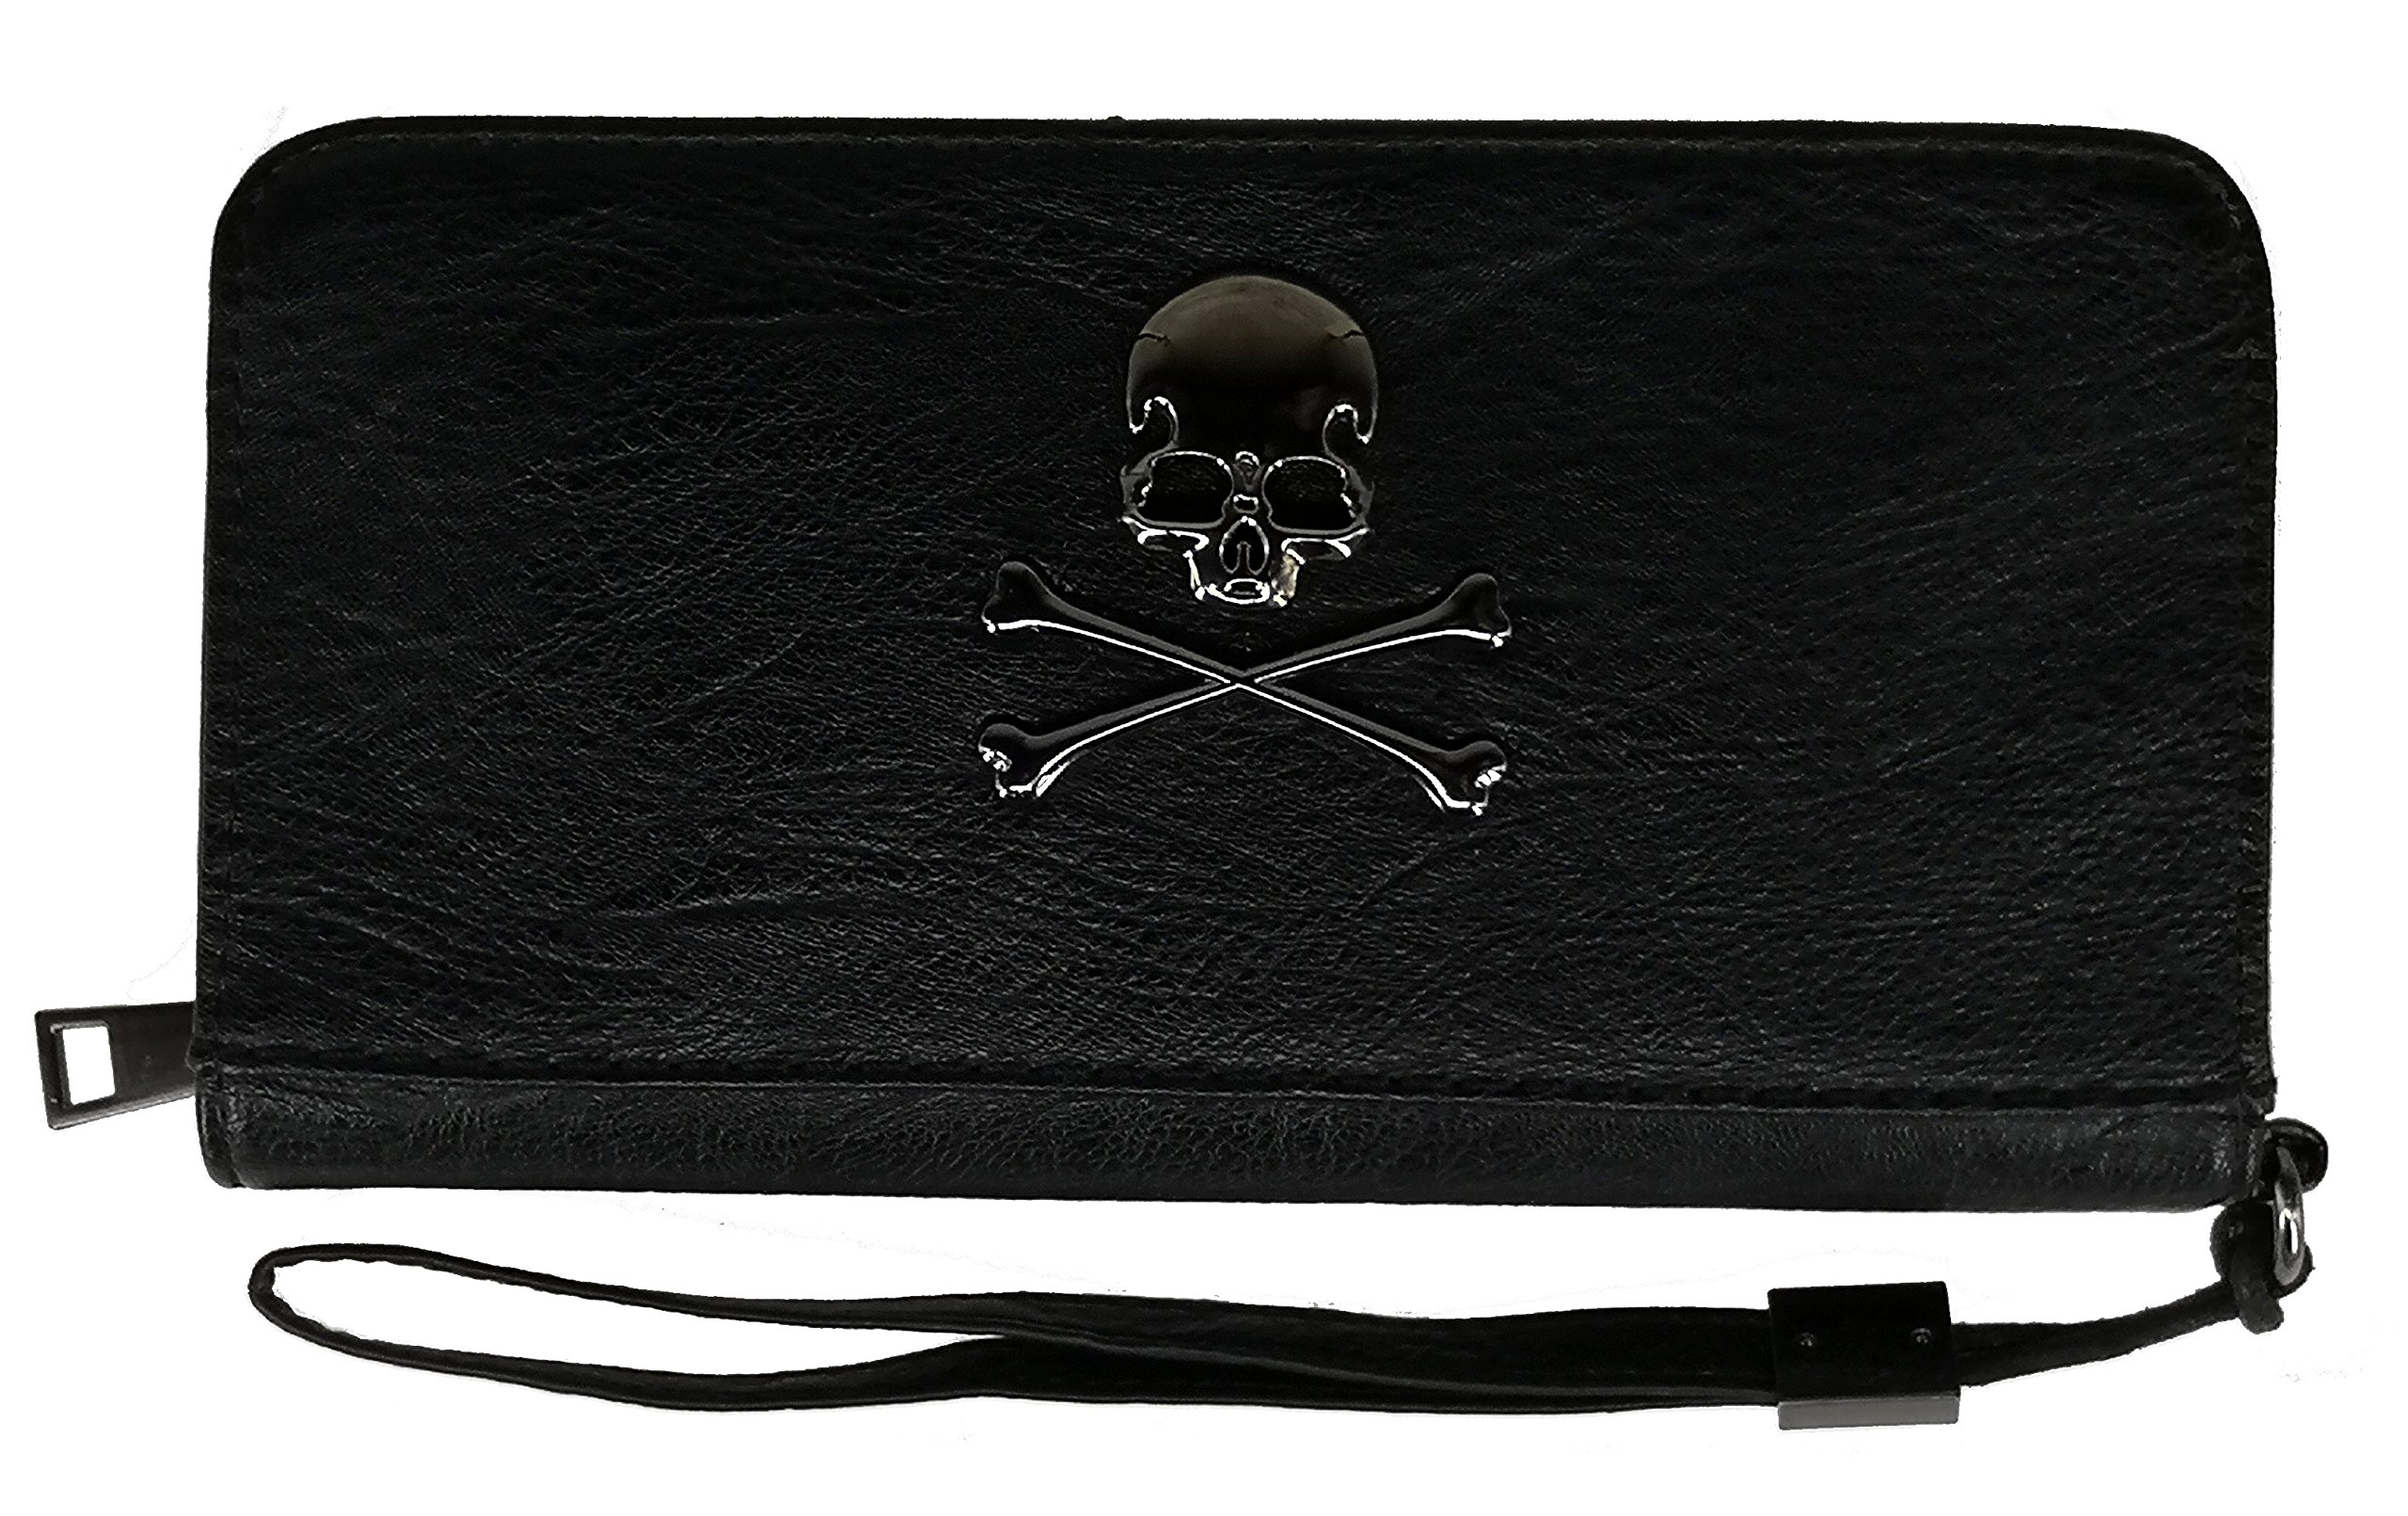 ABC STORY Women Minimalism Leather Skull Zipper Wristlets Wallet Purse Clutch For Men Black